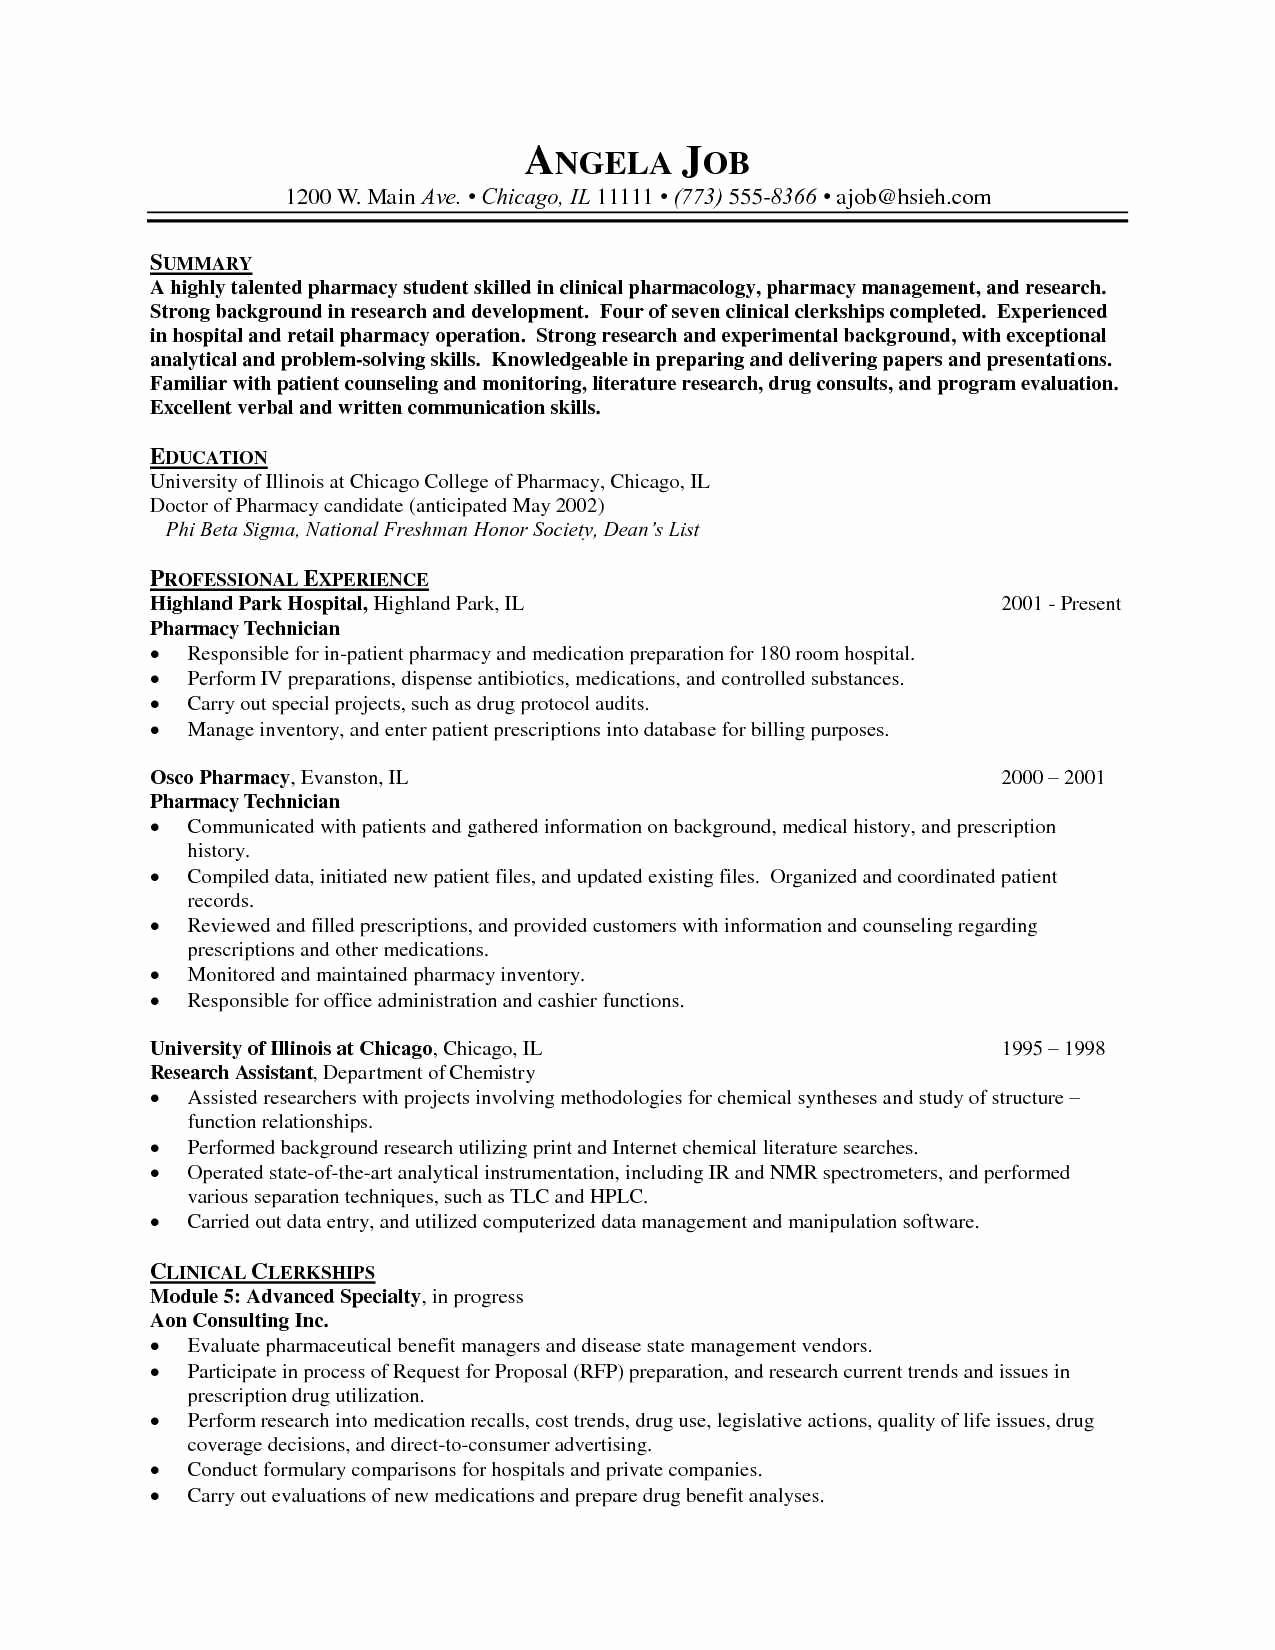 Microbiology Lab assistant Resume - Microbiology Resume Samples Best Resume Profiles Examples What to